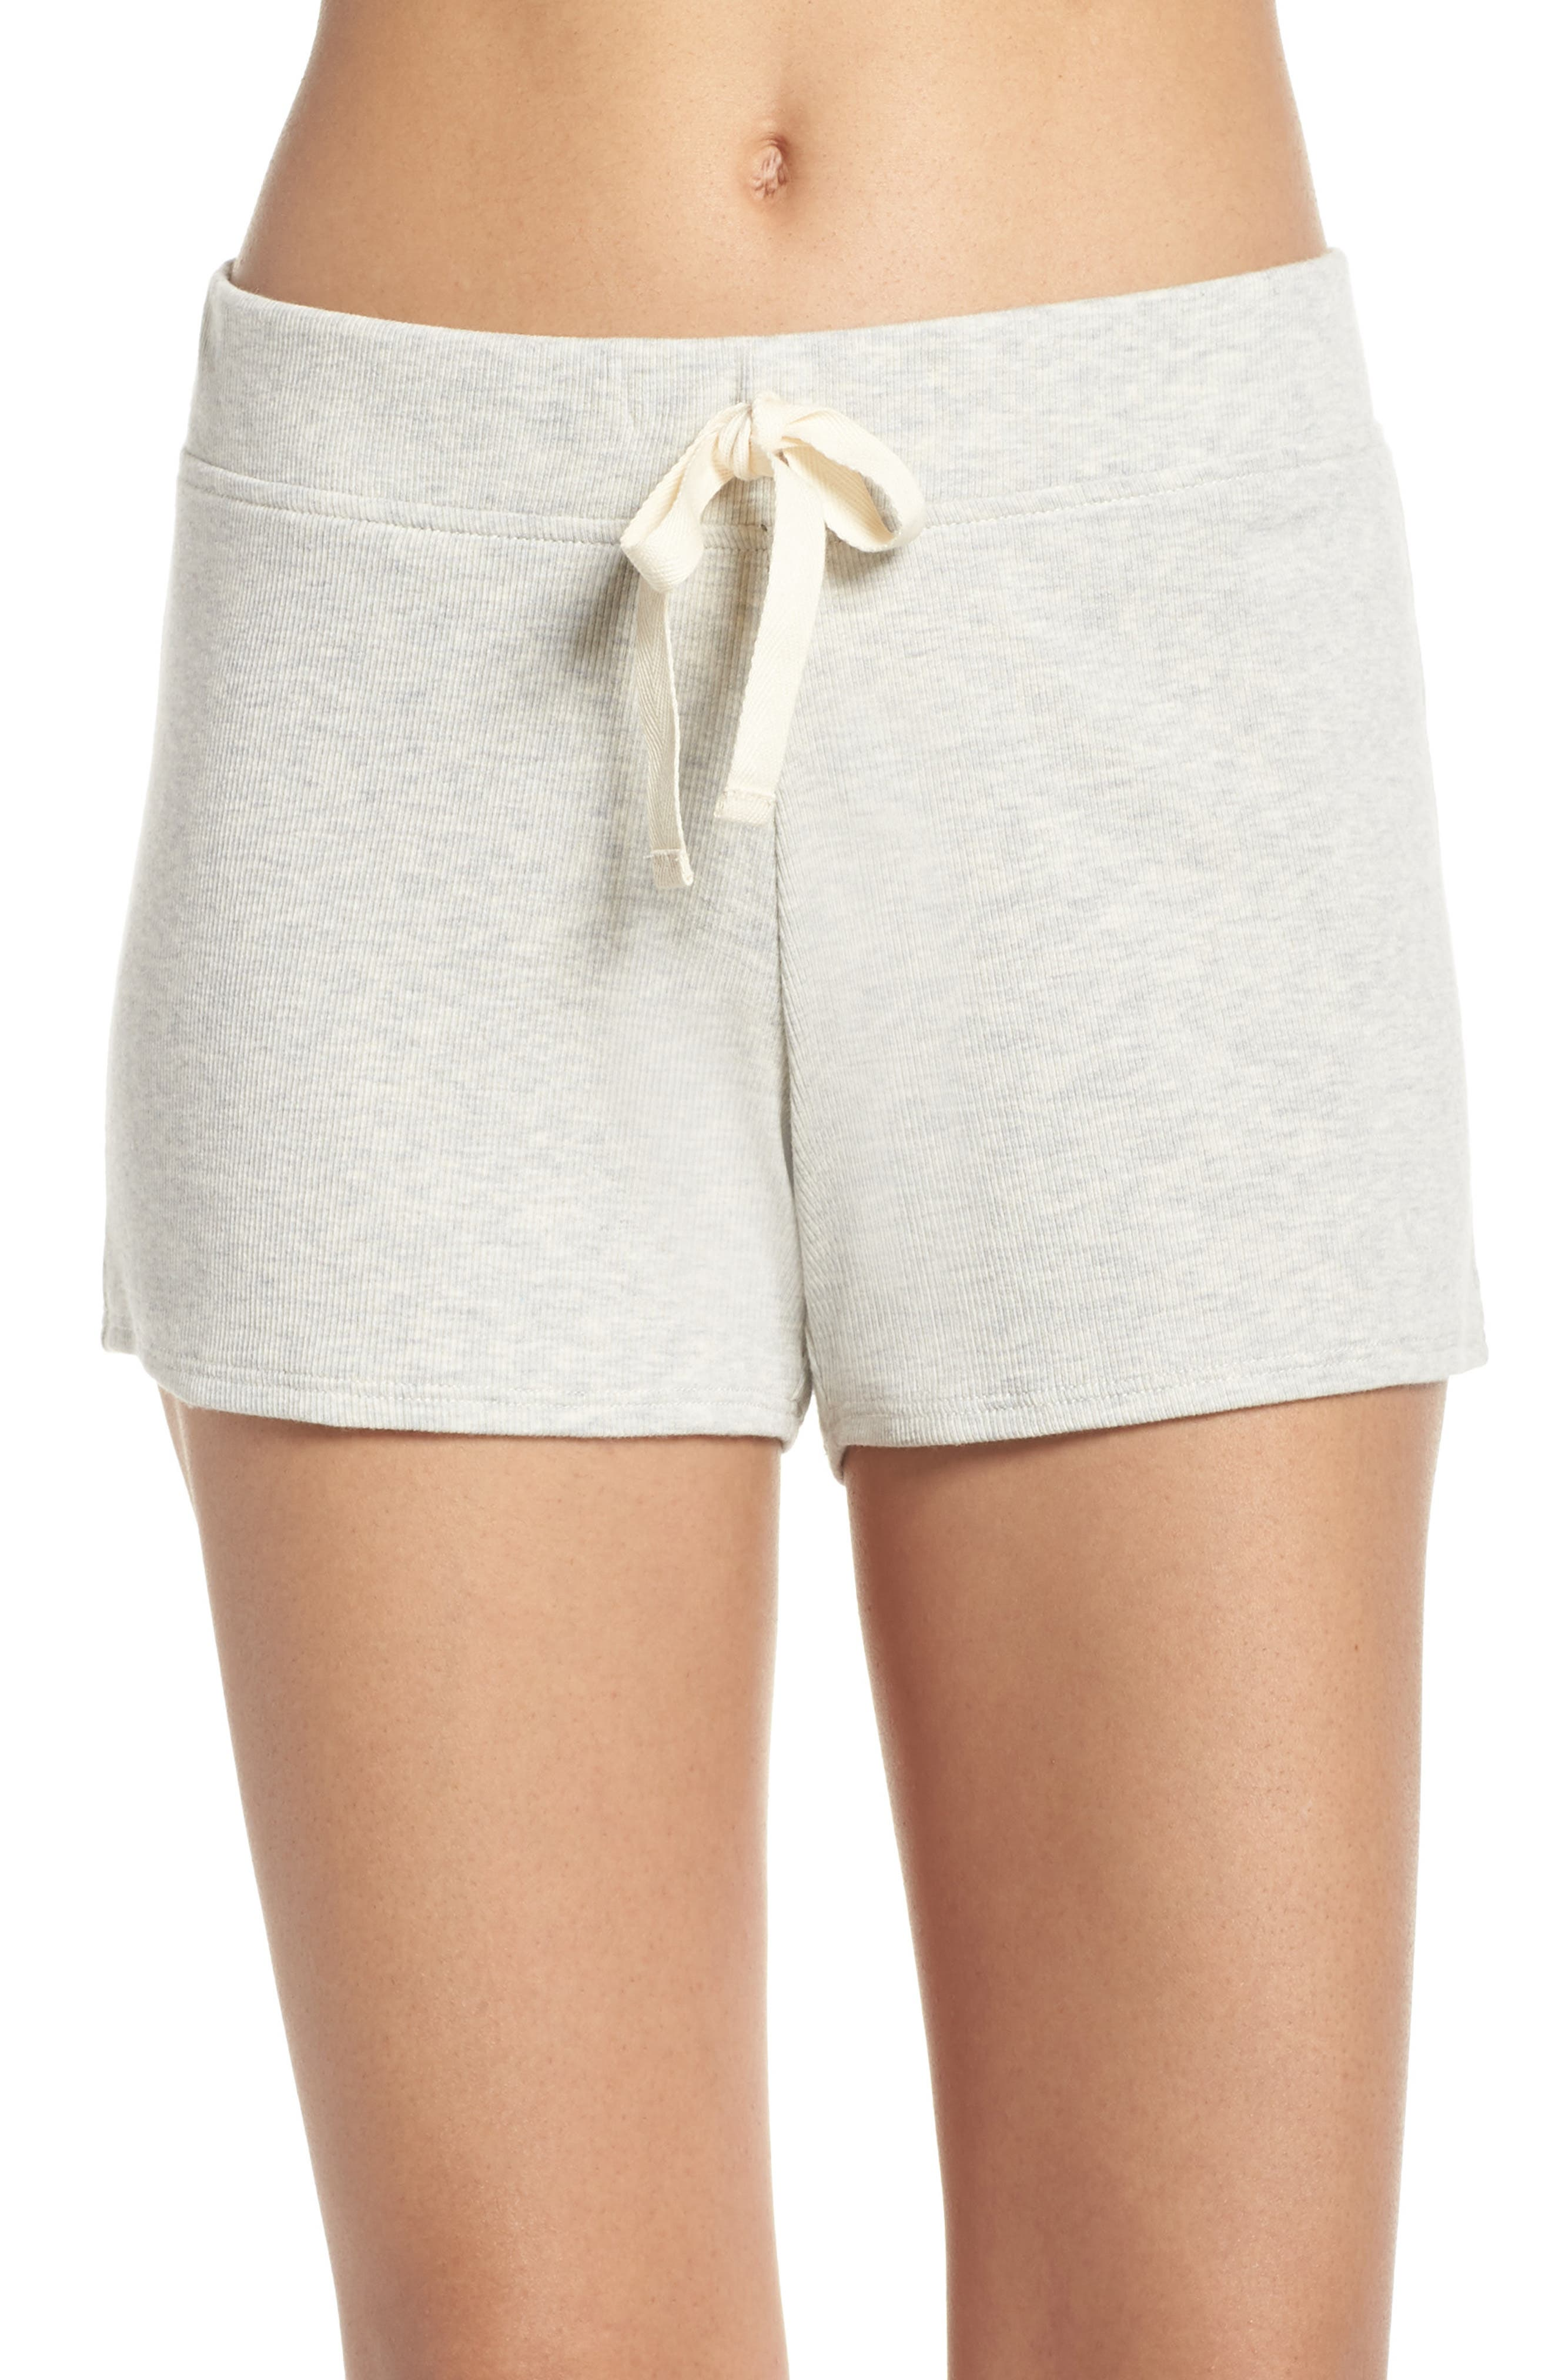 Daydream Lounge Shorts,                             Main thumbnail 1, color,                             Grey Heather